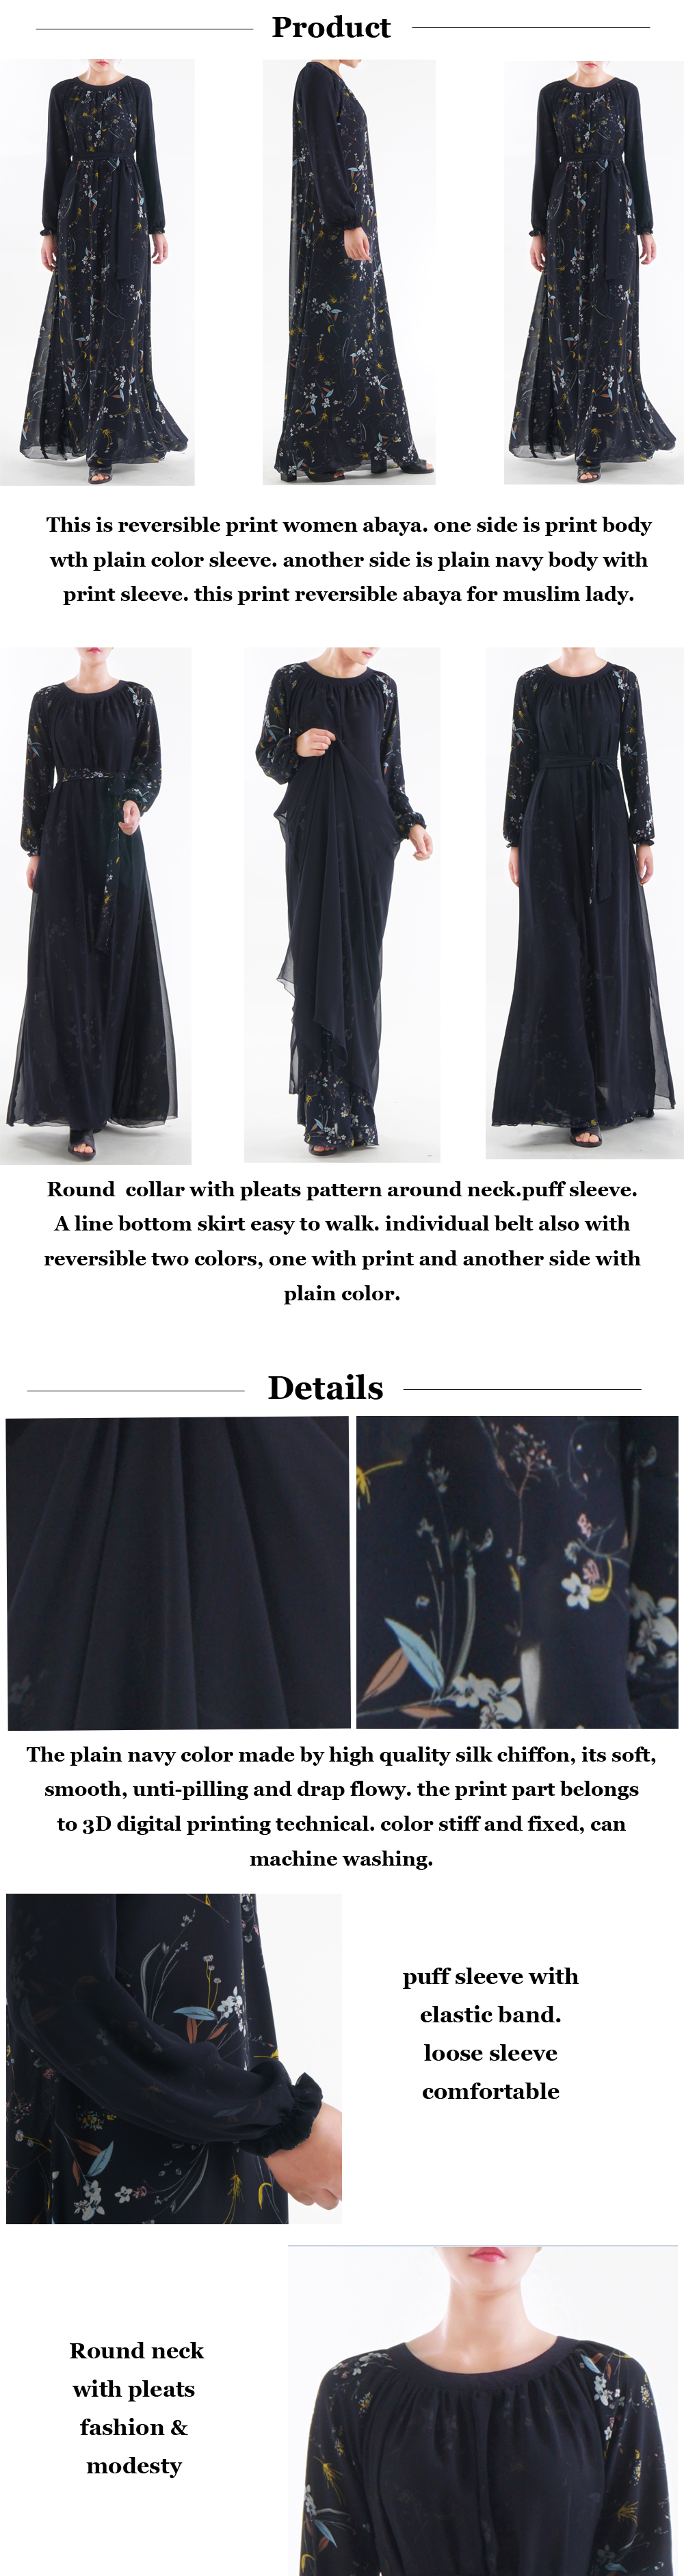 2020 high quality Print chiffon Muslim dress reversible abaya for women latest abaya burqa designs